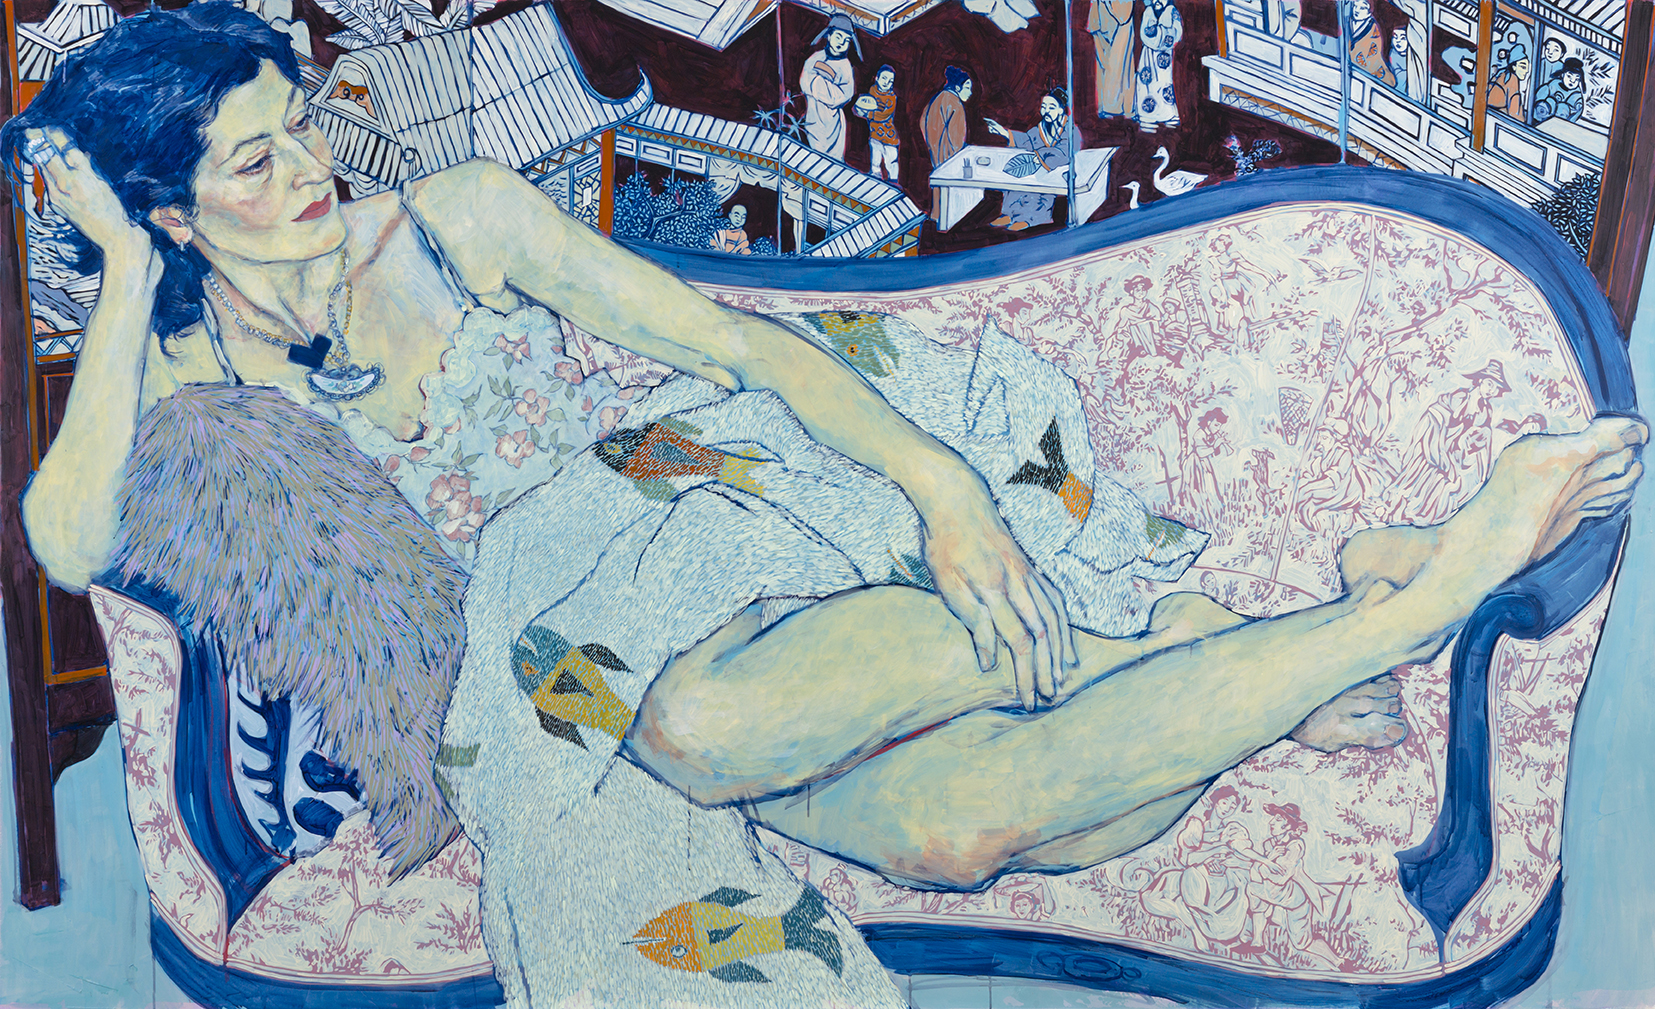 Queen Jane Approximately - Painting by Hope Gangloff